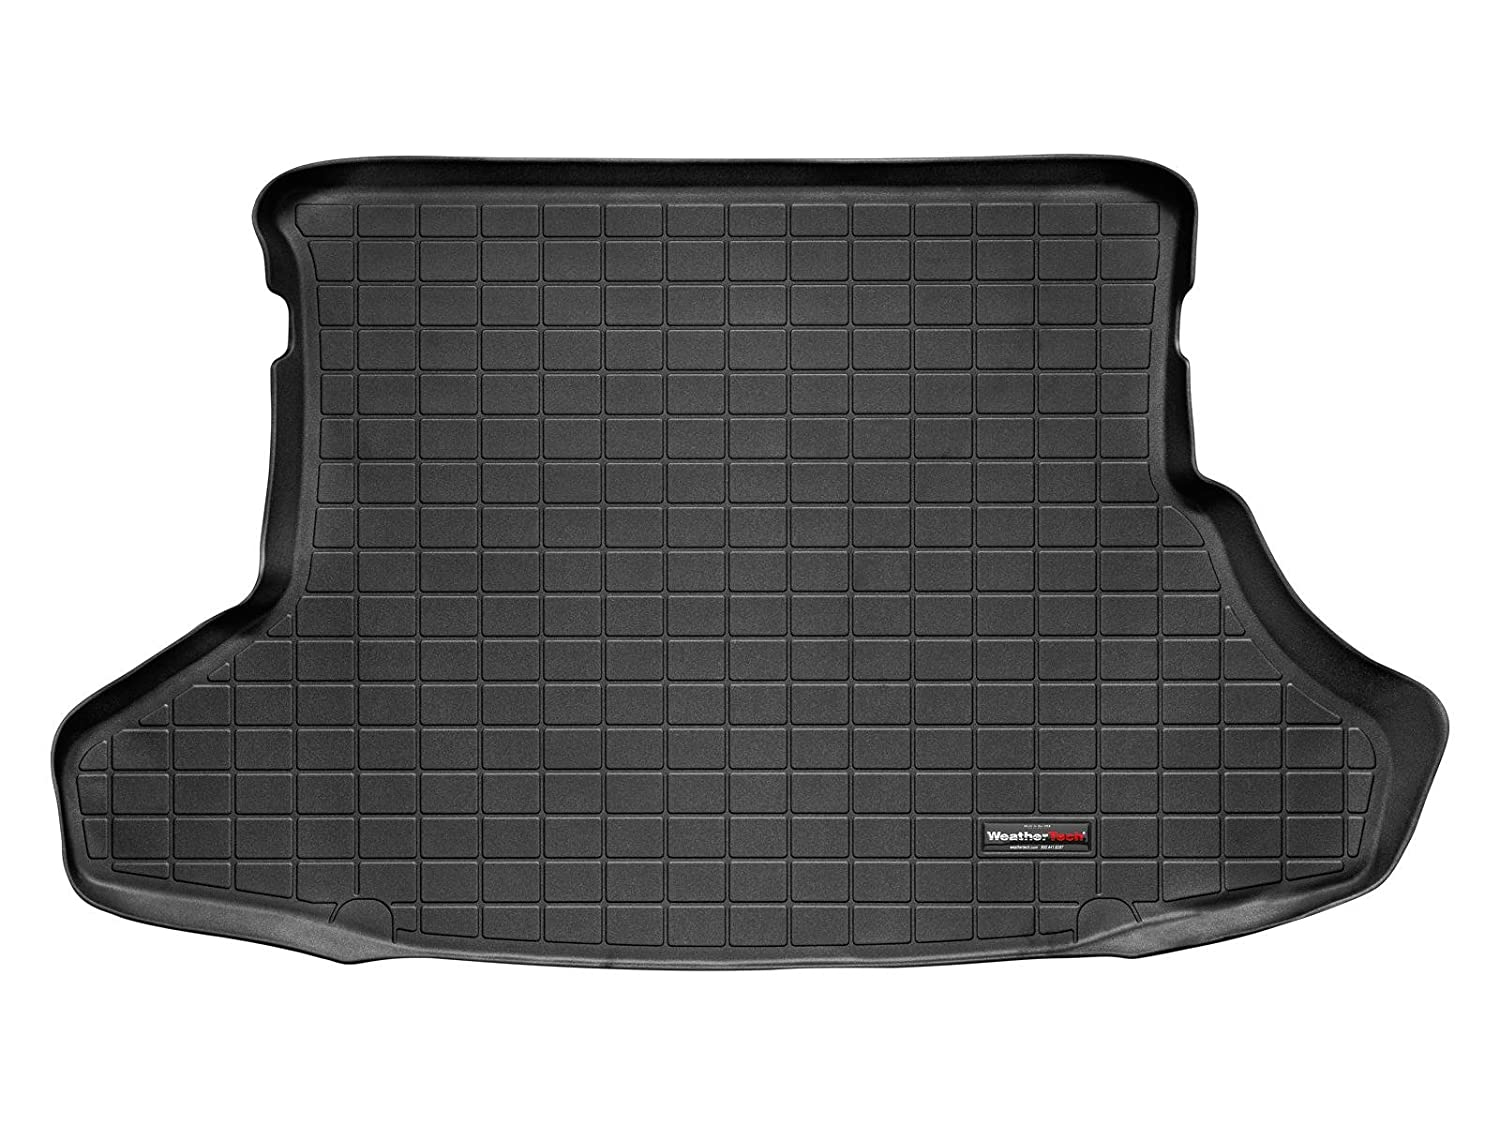 Amazon.com: 2010-2013 Toyota Prius WeatherTech Cargo Liner (Black): Automotive